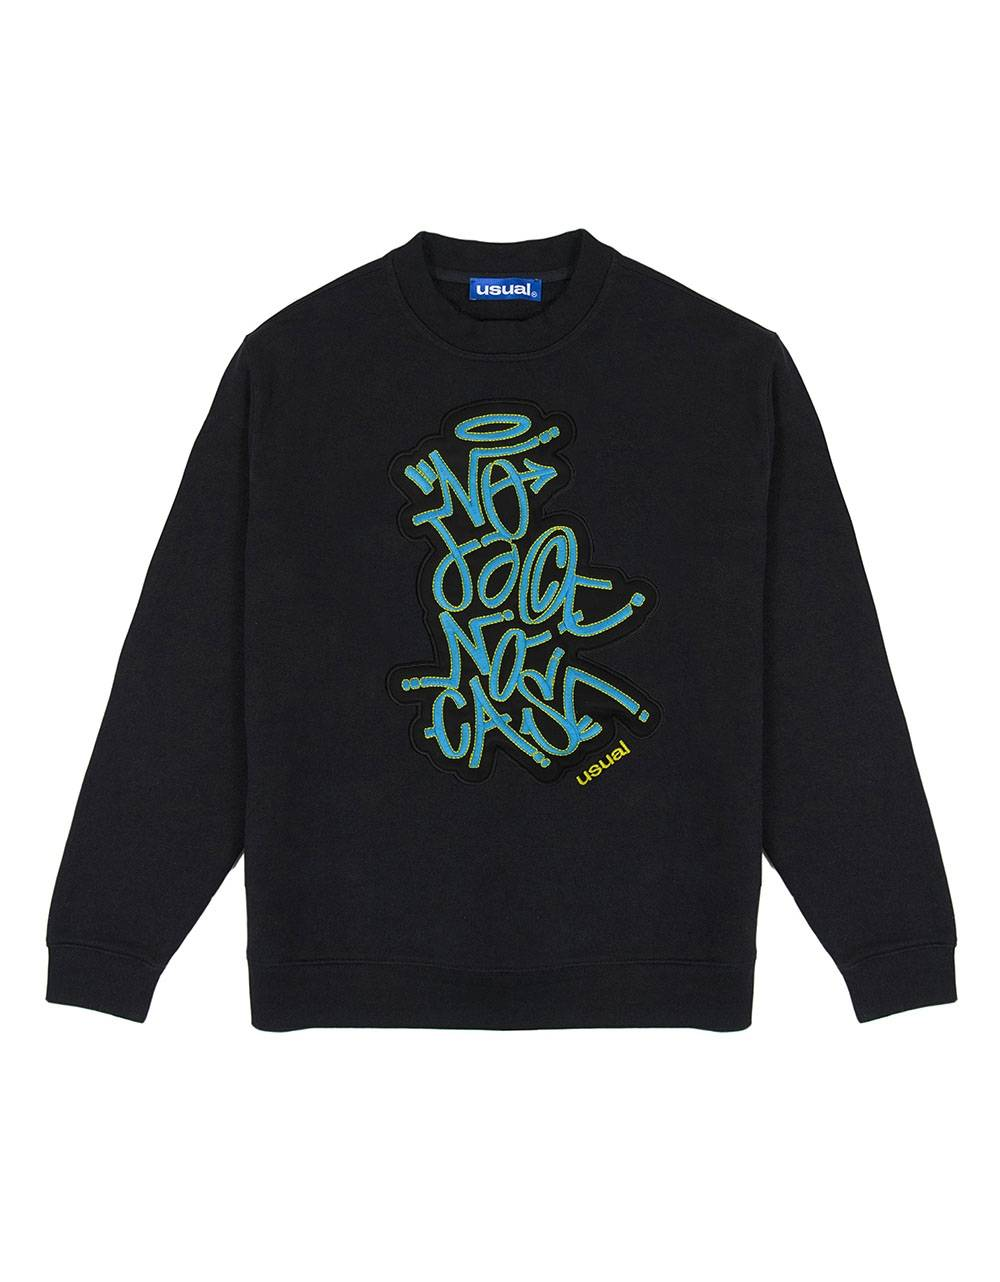 Usual No face crewneck sweater - black Usual Sweater 94,26 €